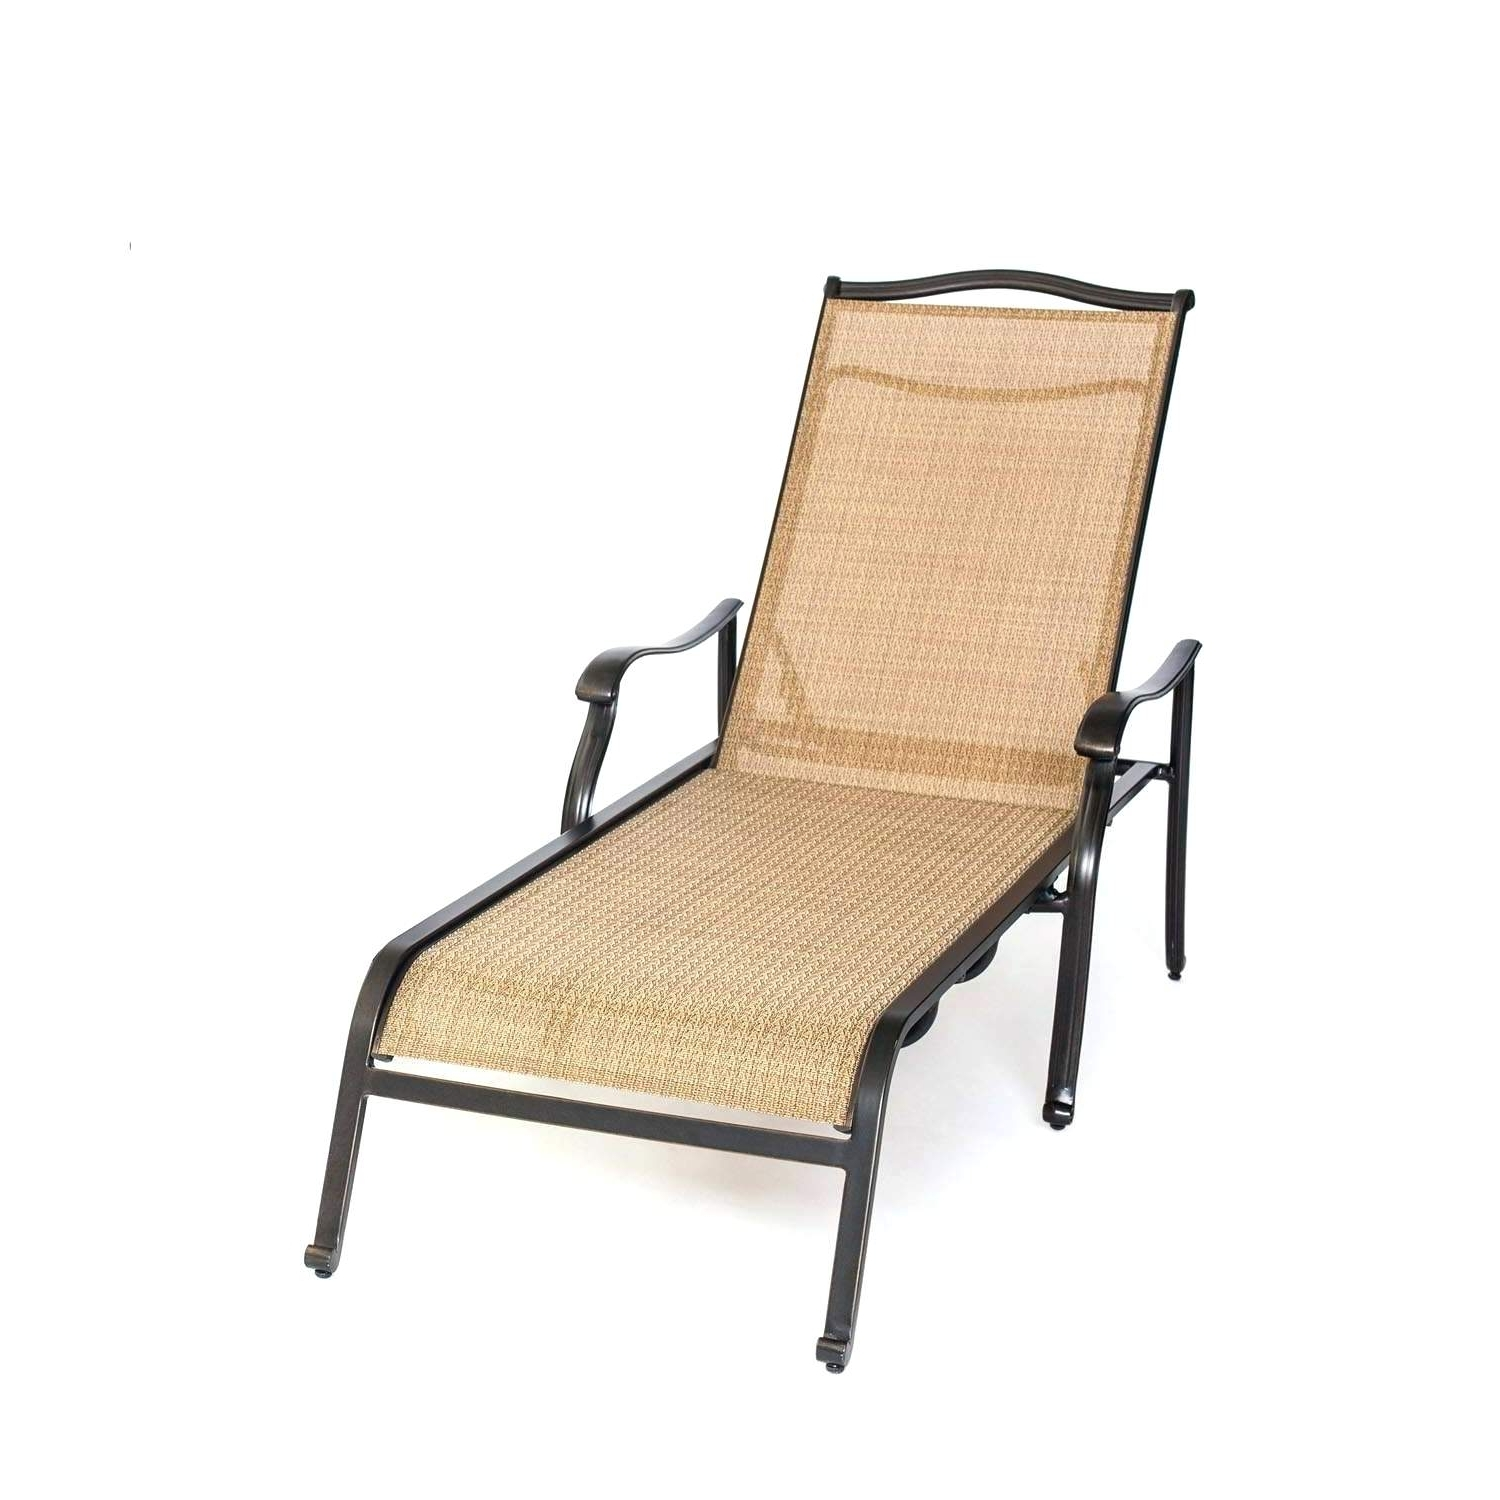 Popular Amazing Chaise Lounge Chair Outdoor (35 Photos) (View 10 of 15)